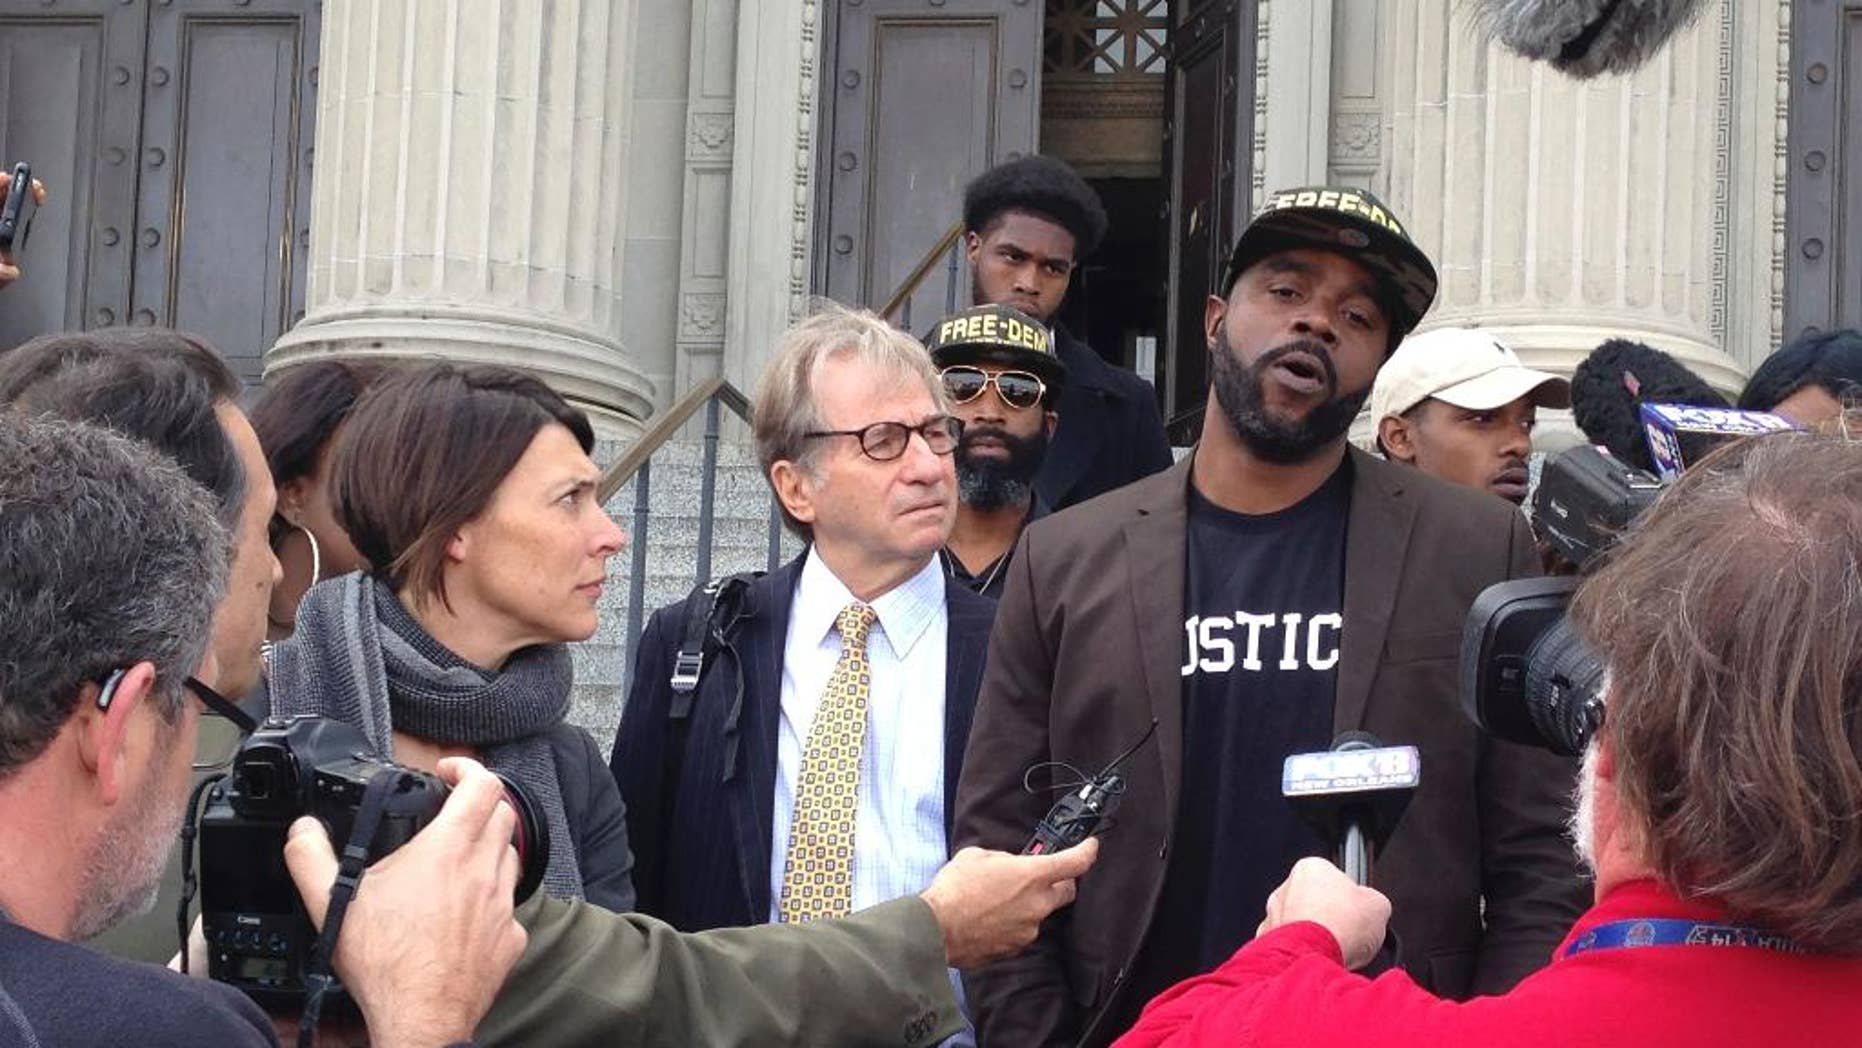 Robert Jones, right, speaks with reporters, with defense attorneys Emily Maw, left, and Barry Scheck, at the New Orleans courthouse, Thursday, Jan. 26, 2017. Prosecutors formally dropped charges Thursday against Jones who spent more than 20 years behind bars for a 1992 crime spree that included the slaying of a British tourist. (AP Photo/Kevin McGill)